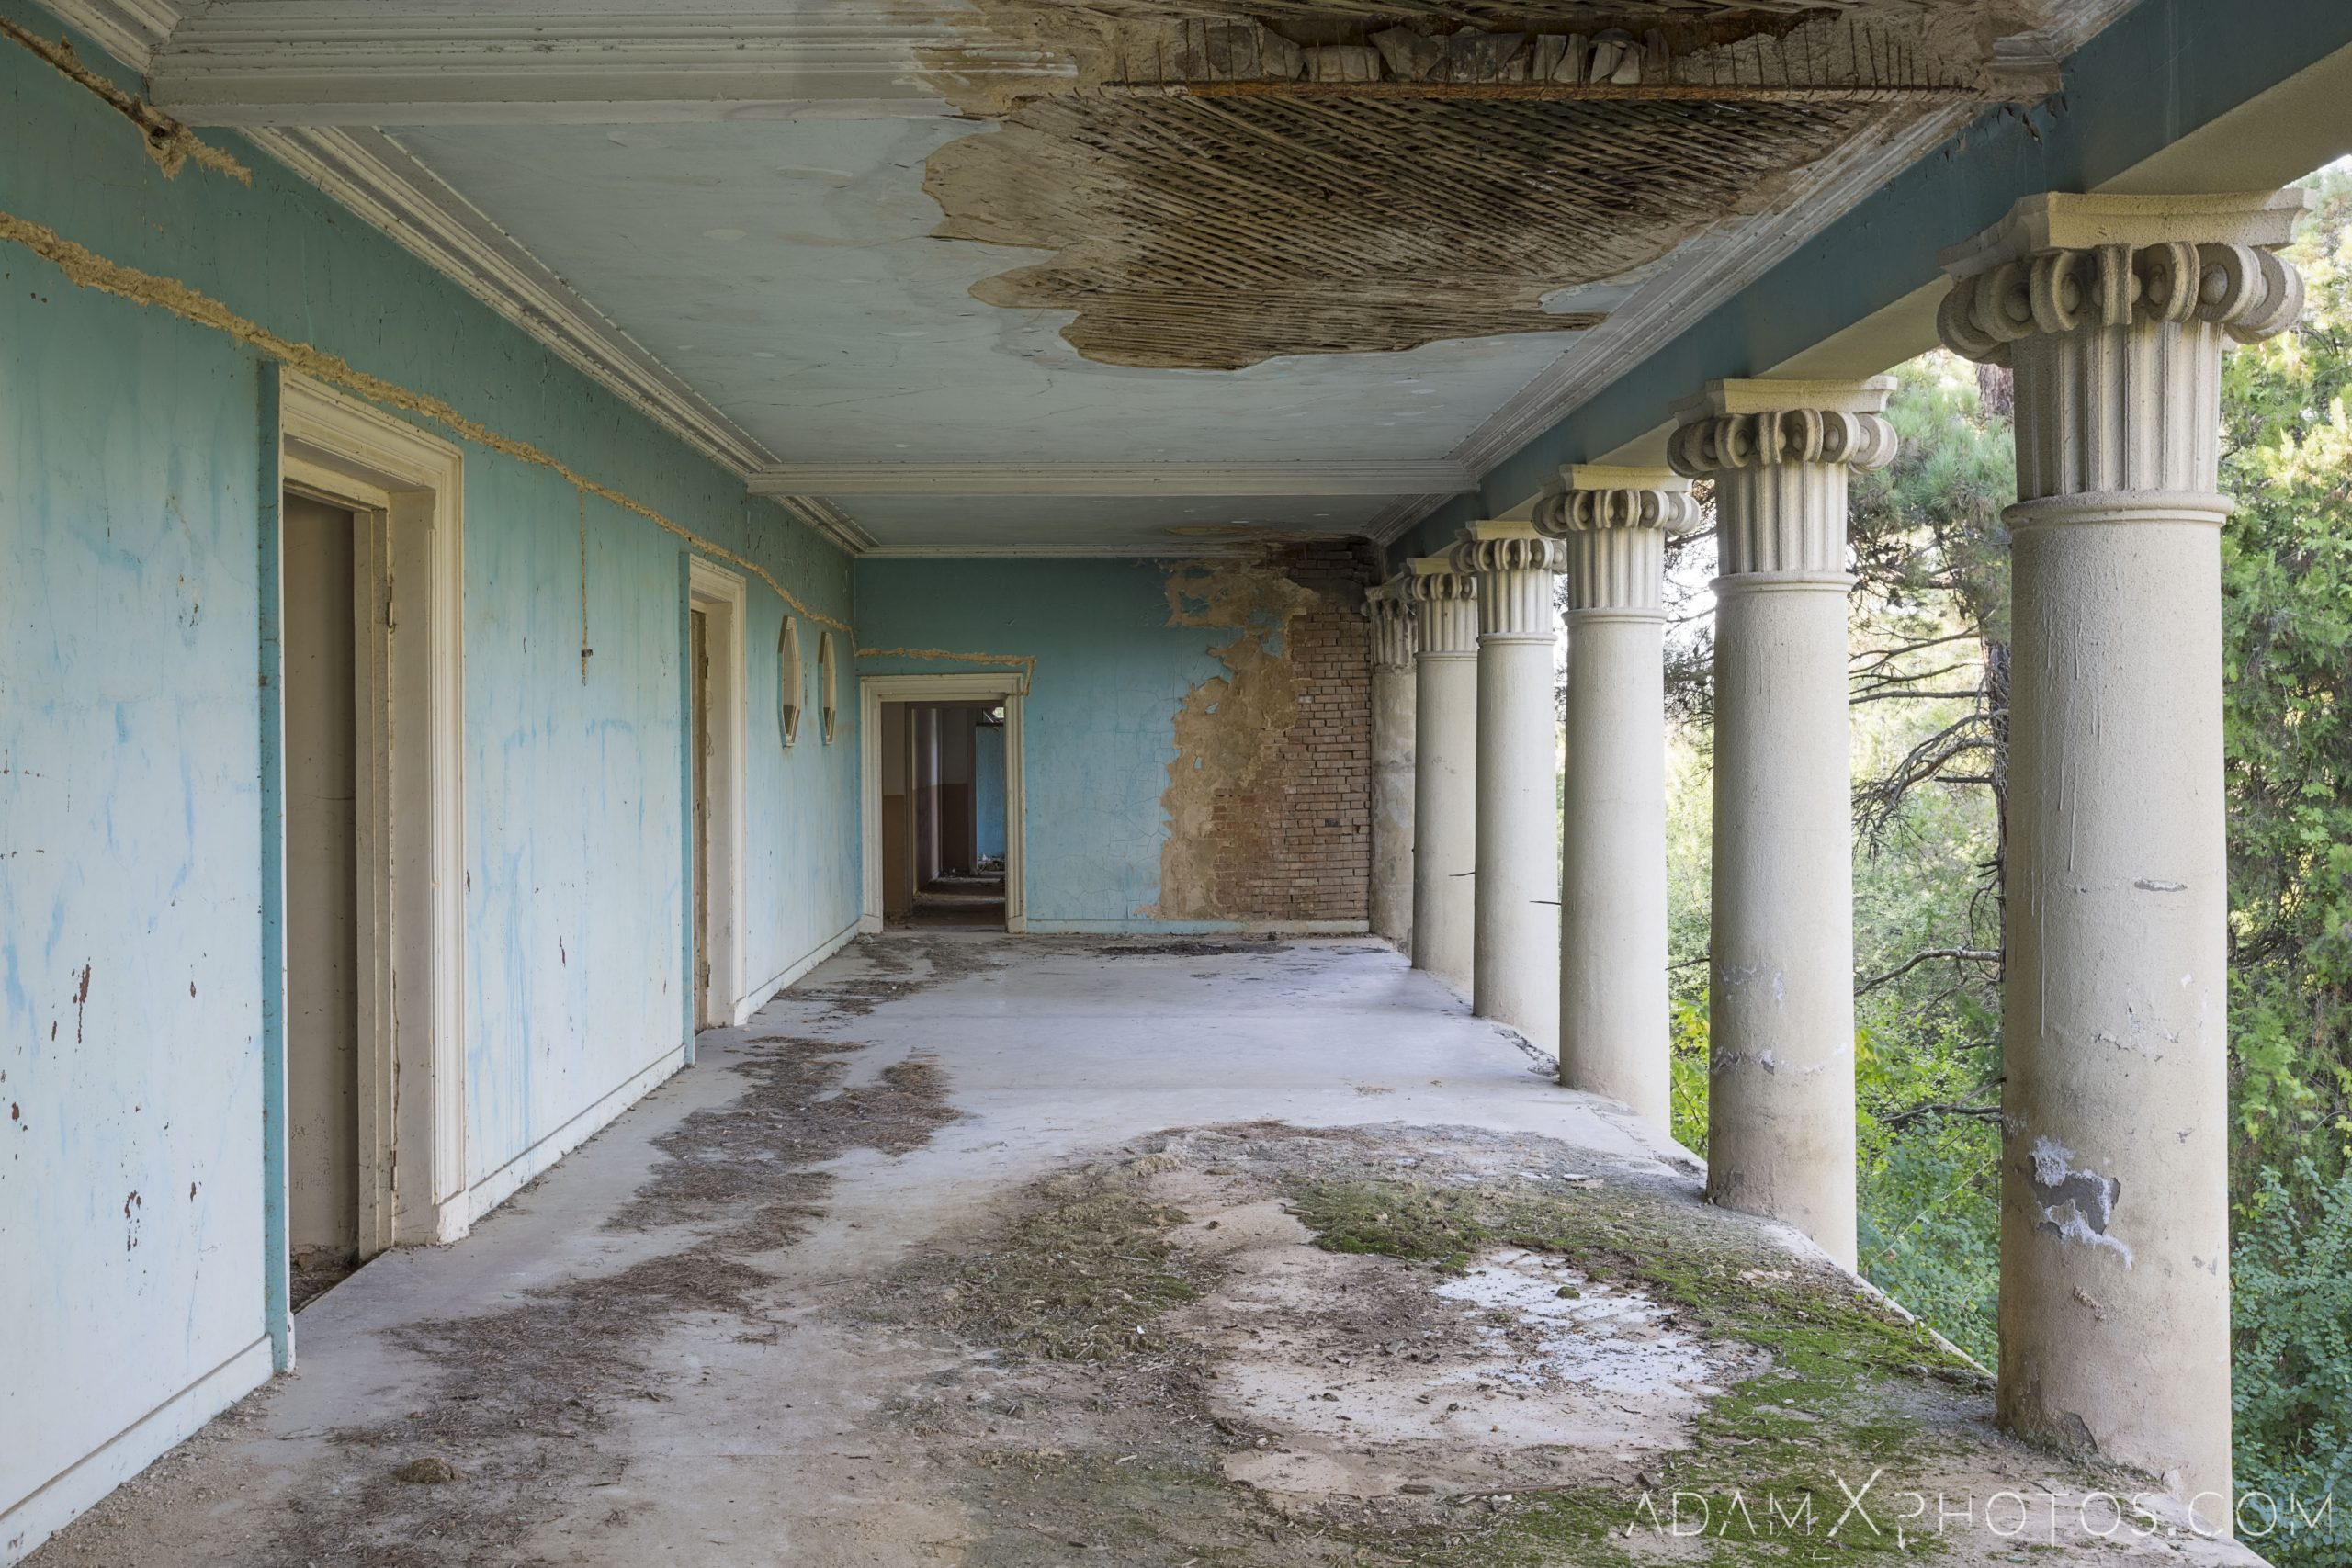 Exterior outside balcony colonnade House of Culture Palace Pink rural Soviet era Georgia Adam X AdamXPhotos Urbex Urban Exploration 2018 Abandoned Access History decay ruins lost forgotten derelict location creepy haunting eerie security